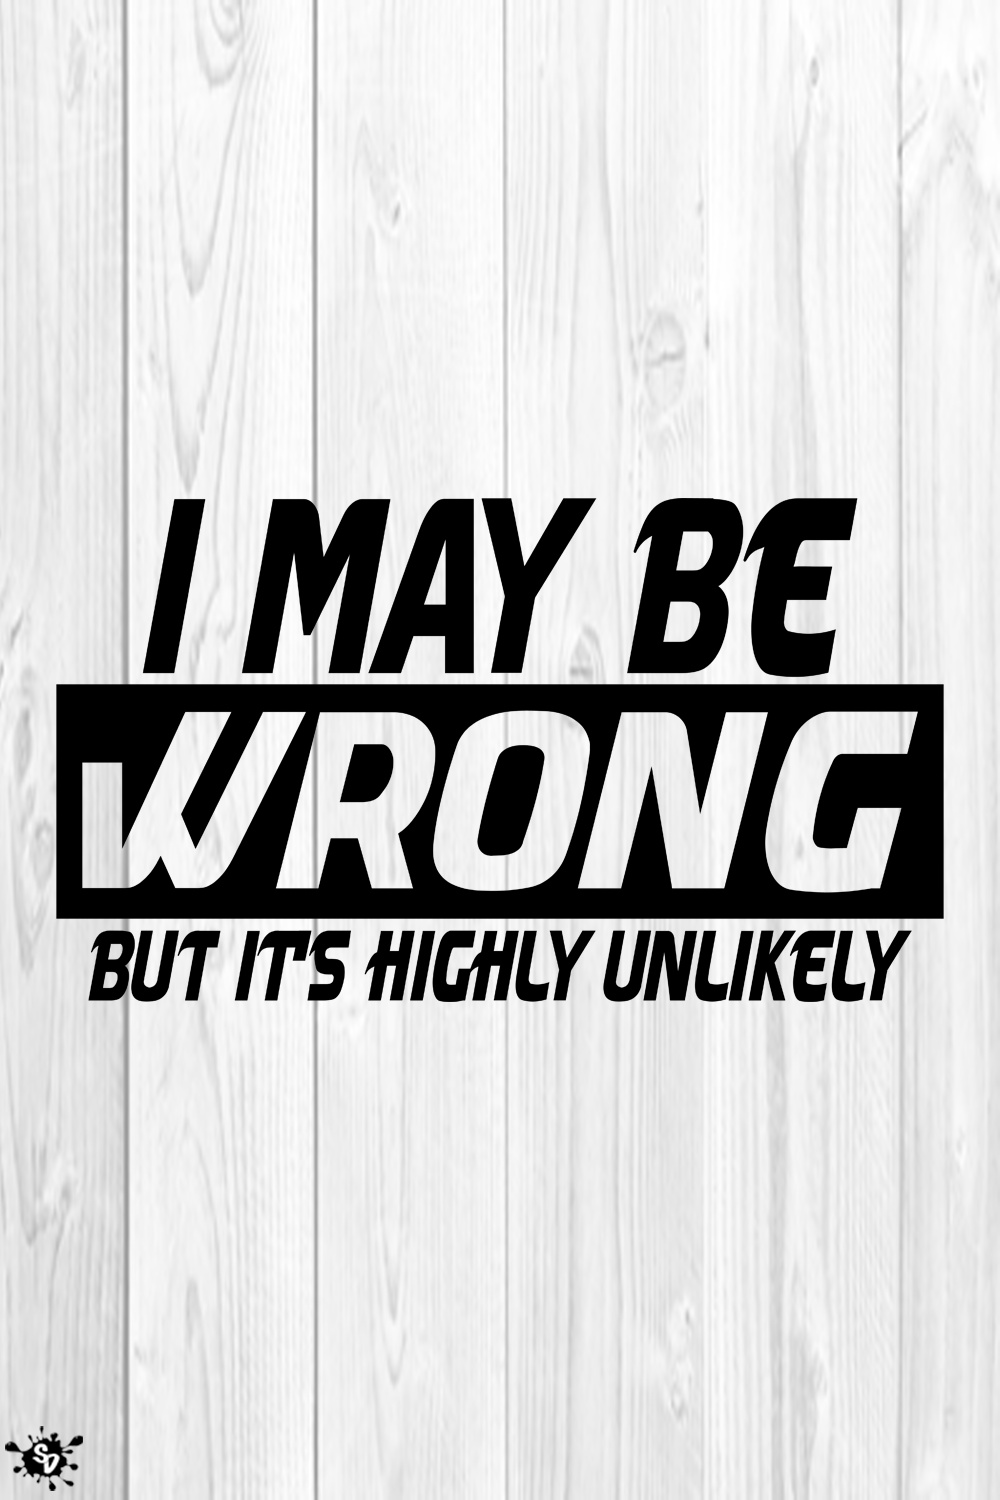 Funny Quotes 45 Designs Svg Png Dxf Eps Studio Design In 2020 Funny Quotes Svg Quotes Graphic Quotes